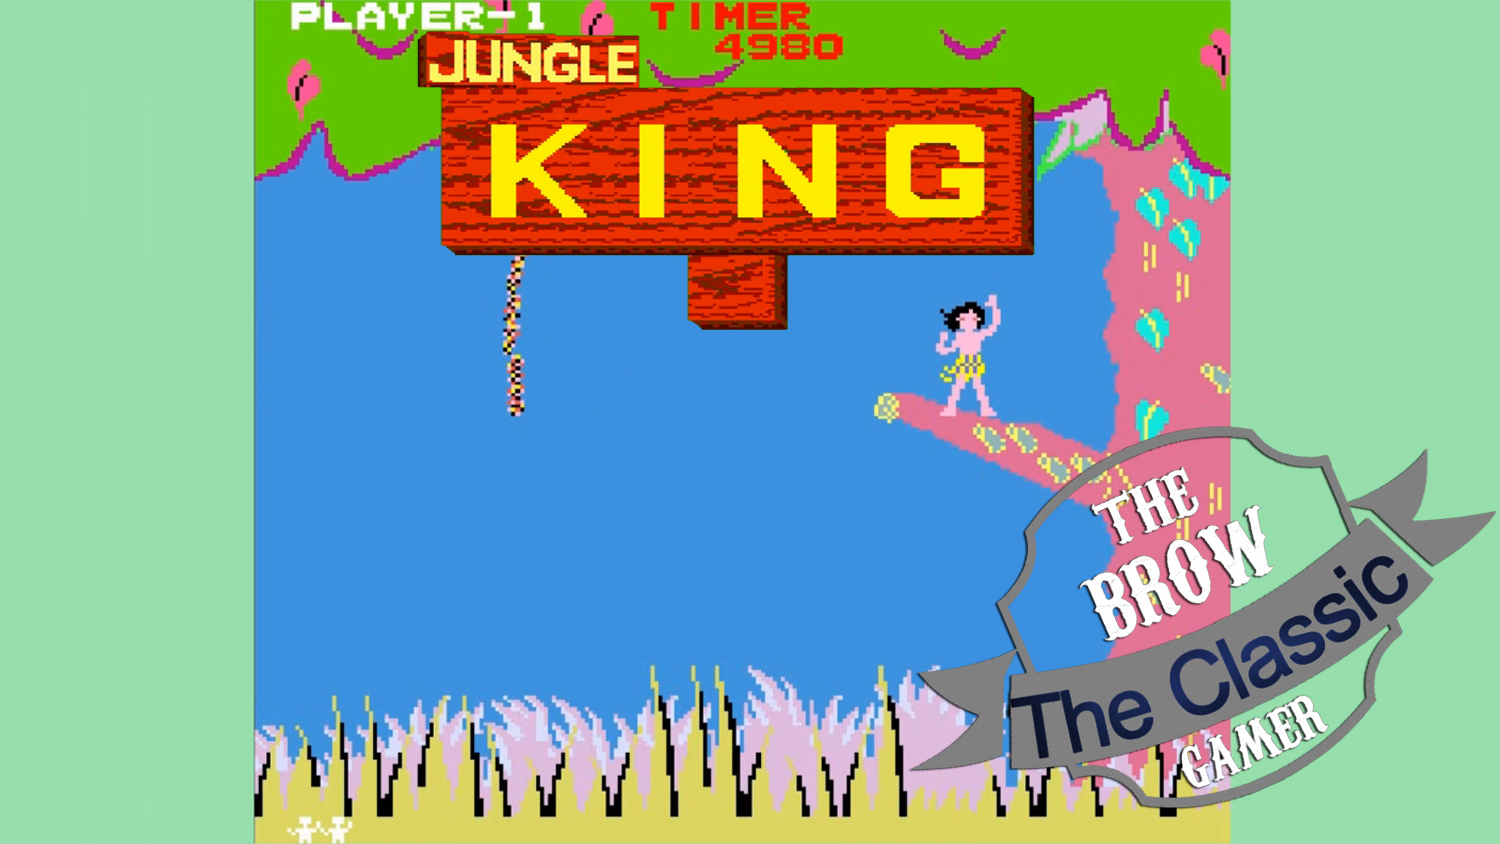 The BROW Play Classic JUNGLE KING